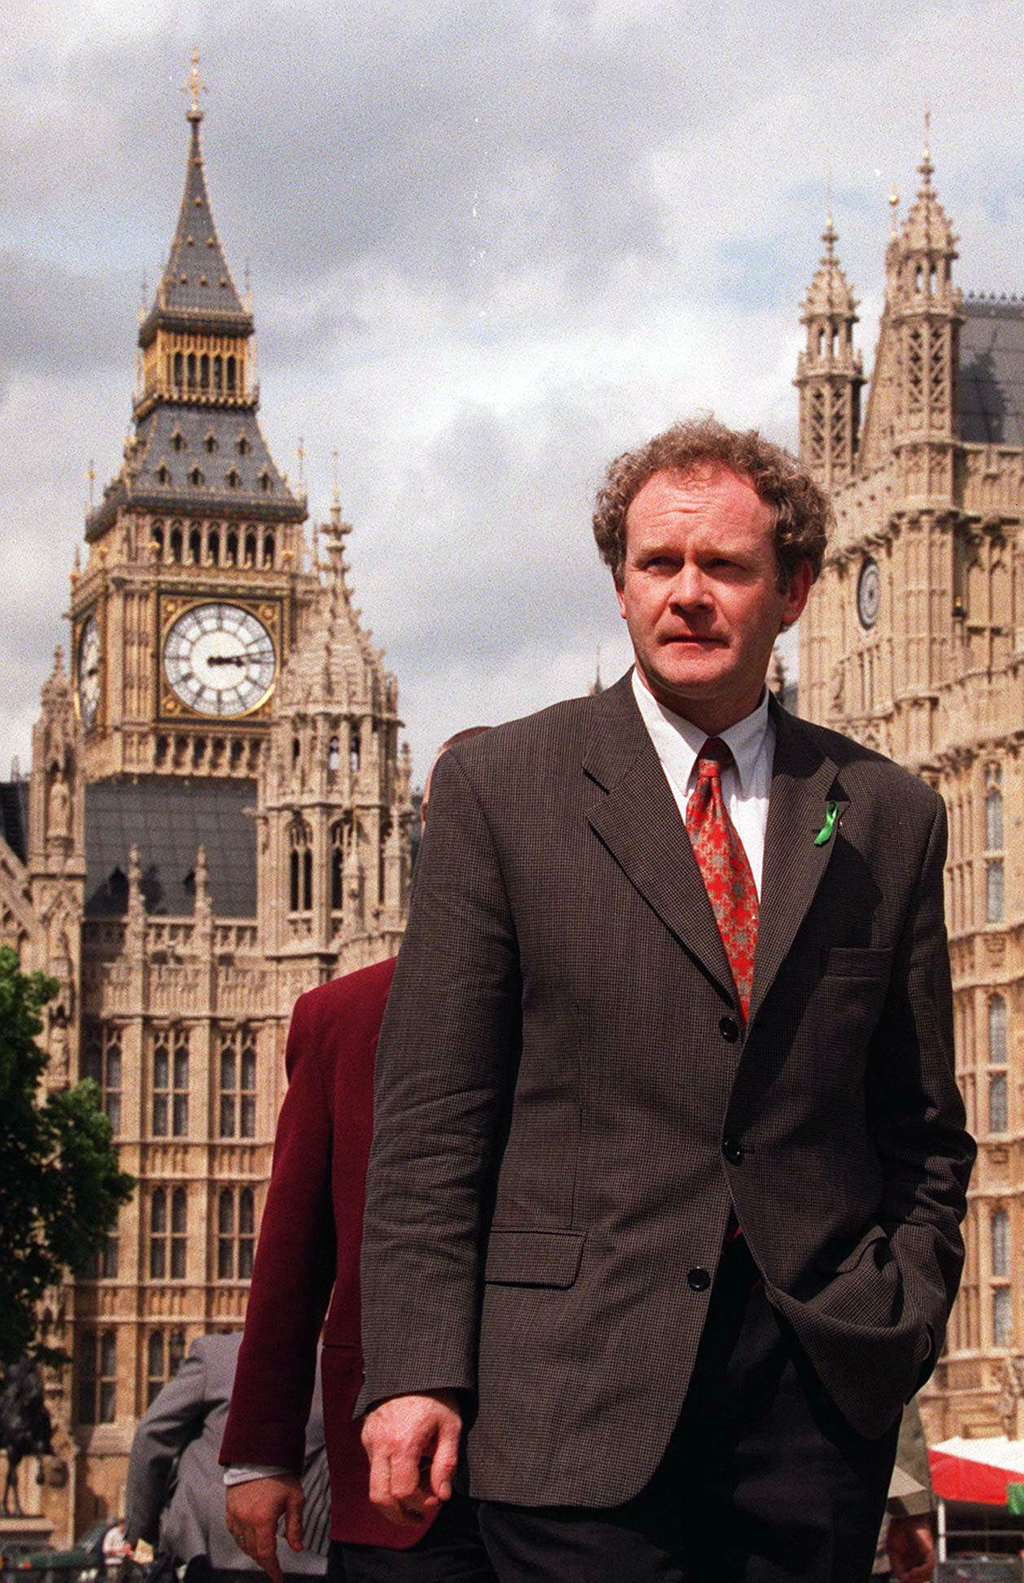 FILE - In this May 13, 1997 file photo Sinn Fein's Martin McGuinness walks past the Houses of Parliament in London. McGuinness, the Iri...